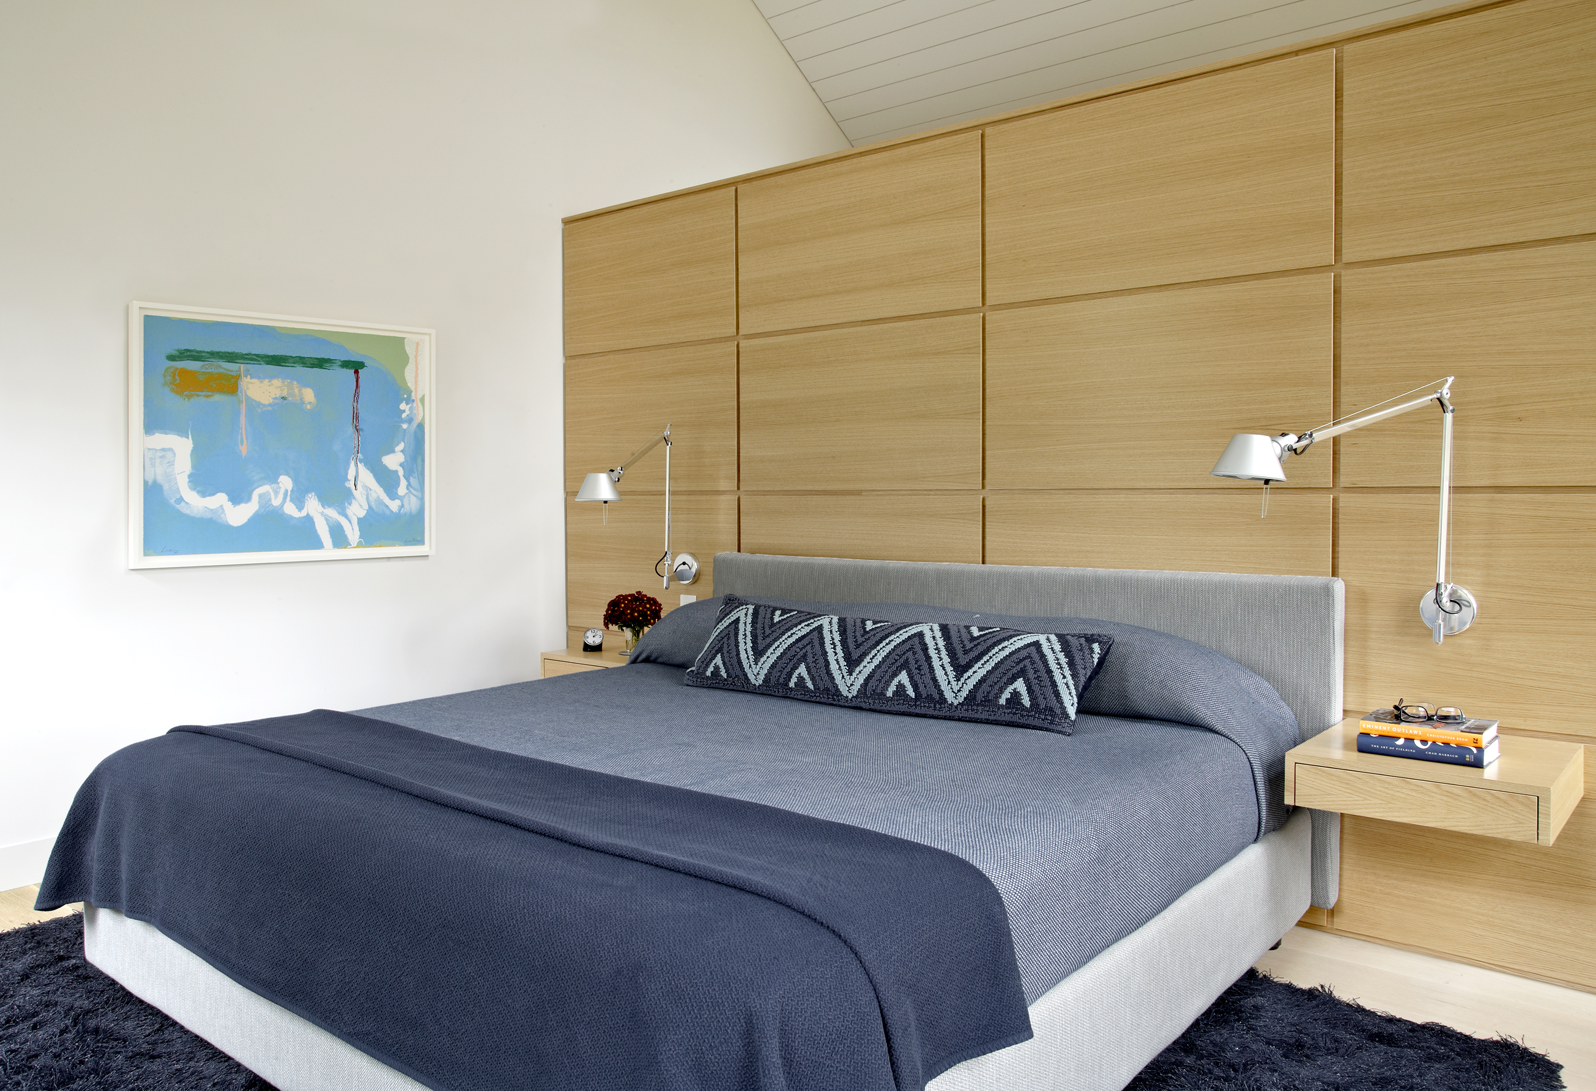 Modern Minimalist Bedroom With Platform Bed (Image 17 of 23)